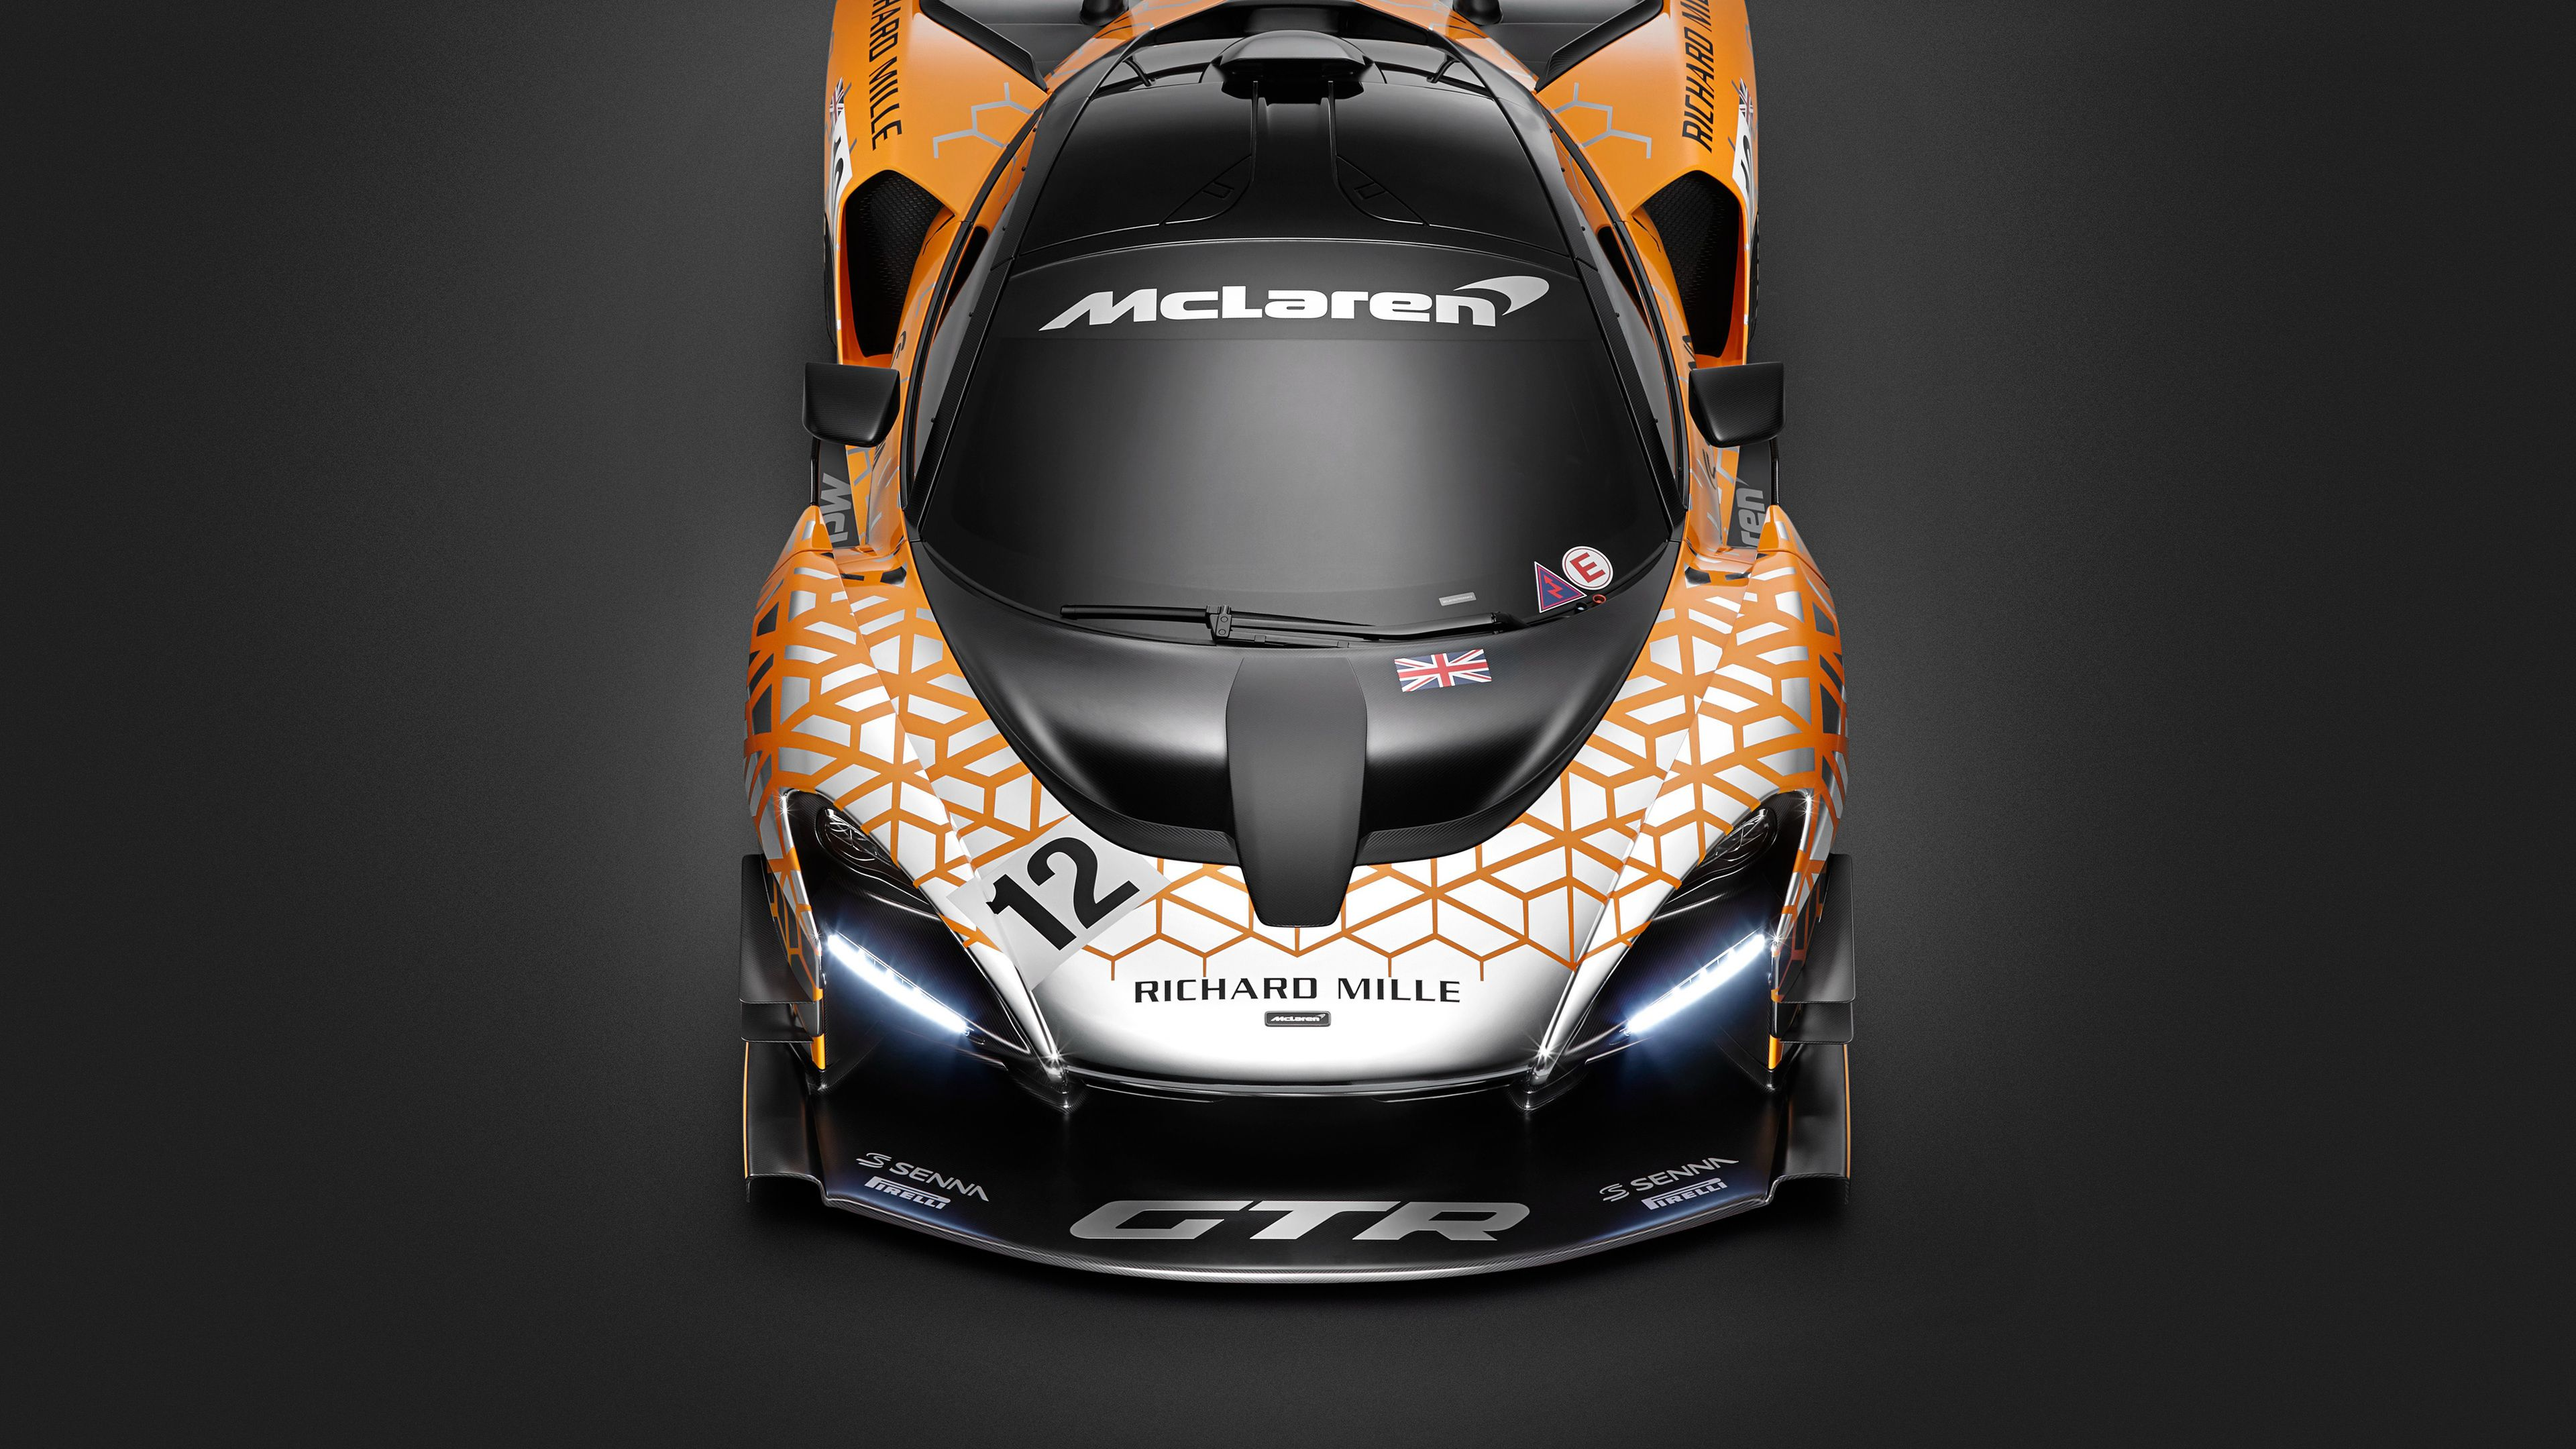 2018 Mclaren Senna Gtr Concept Mclaren Wallpapers Mclaren Senna Wallpapers Hd Wallpapers Cars Wallpapers 4k Wallpapers Car Wallpapers Geneva Motor Show Gtr